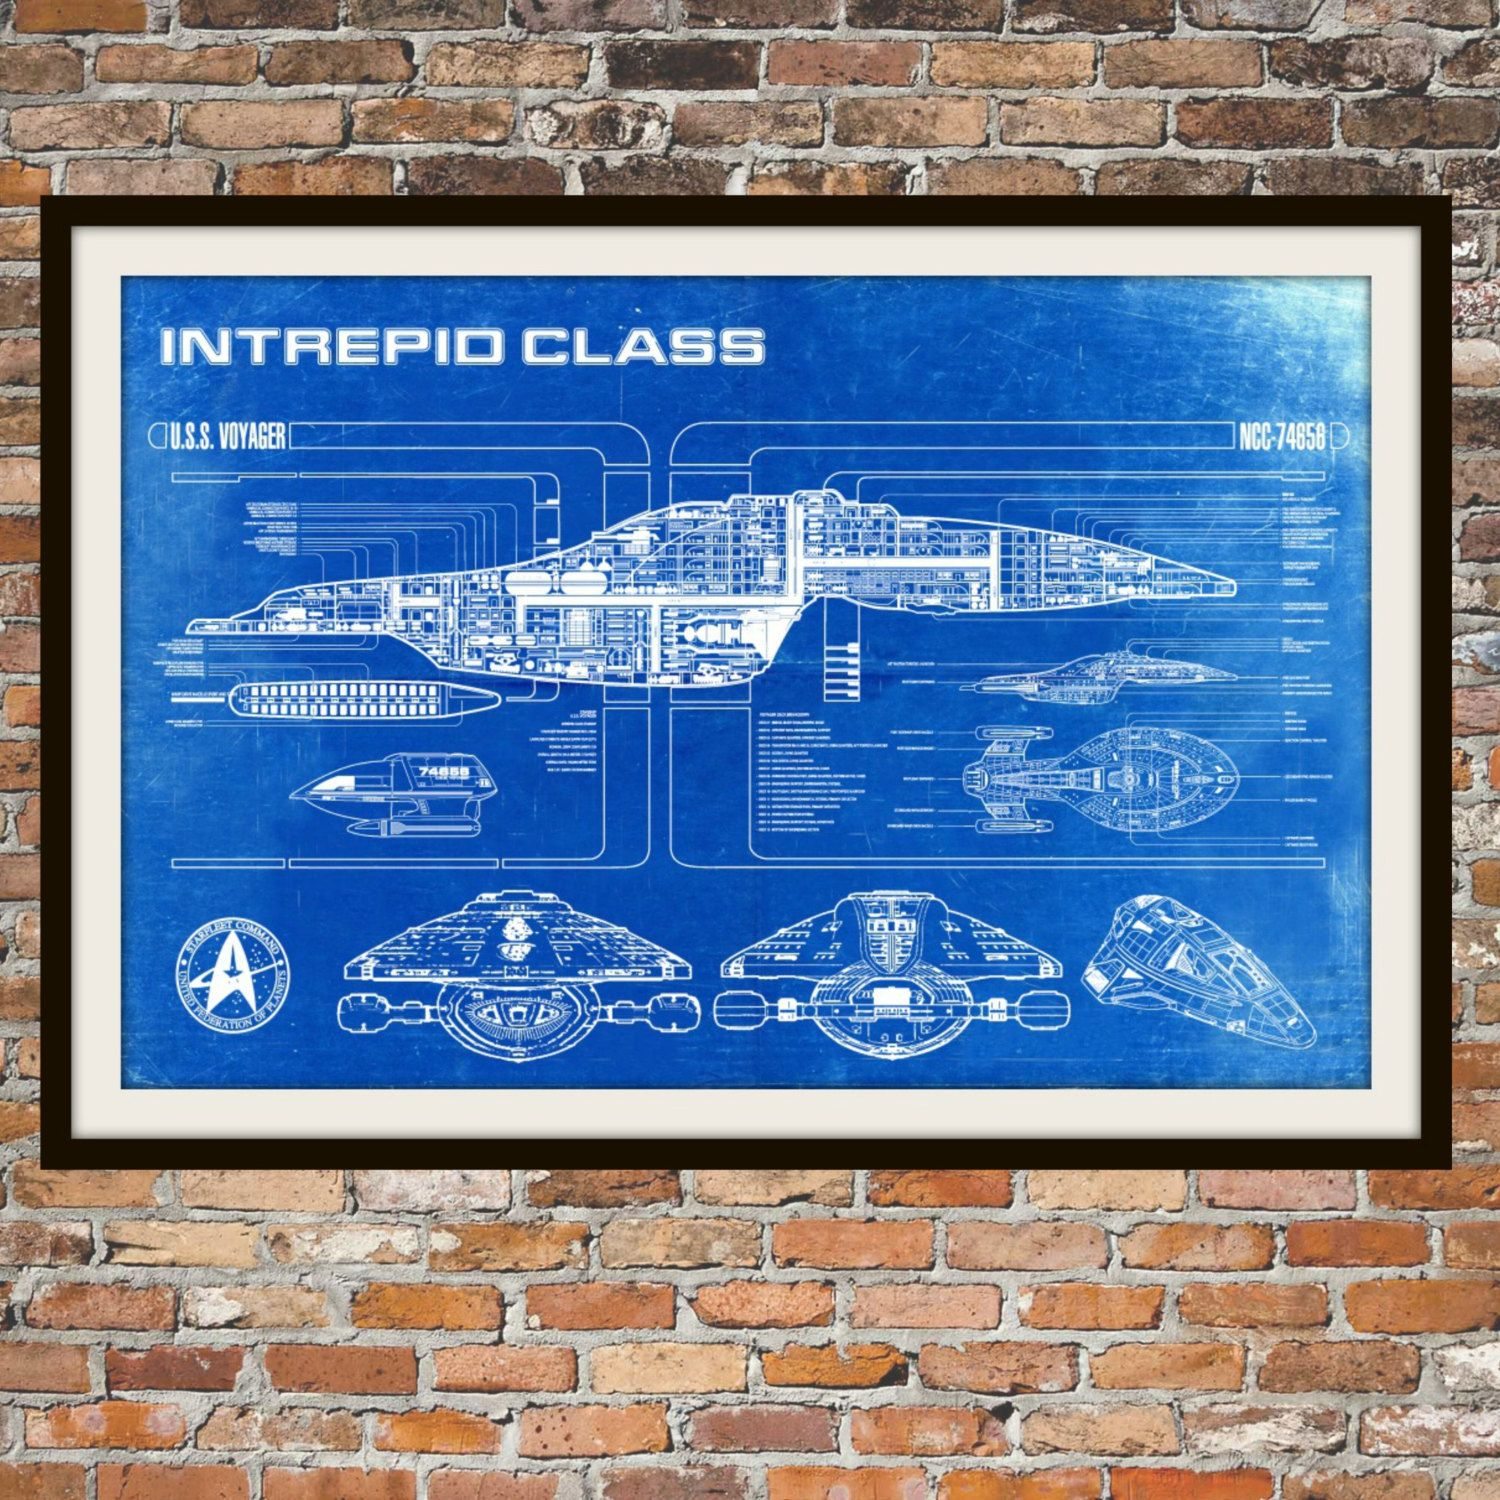 This beautiful print artwork is of the intrepid class uss voyager star trek voyager blueprint art of intrepid uss voyager class technical drawings engineering drawings patent blue print art item 0100 malvernweather Images